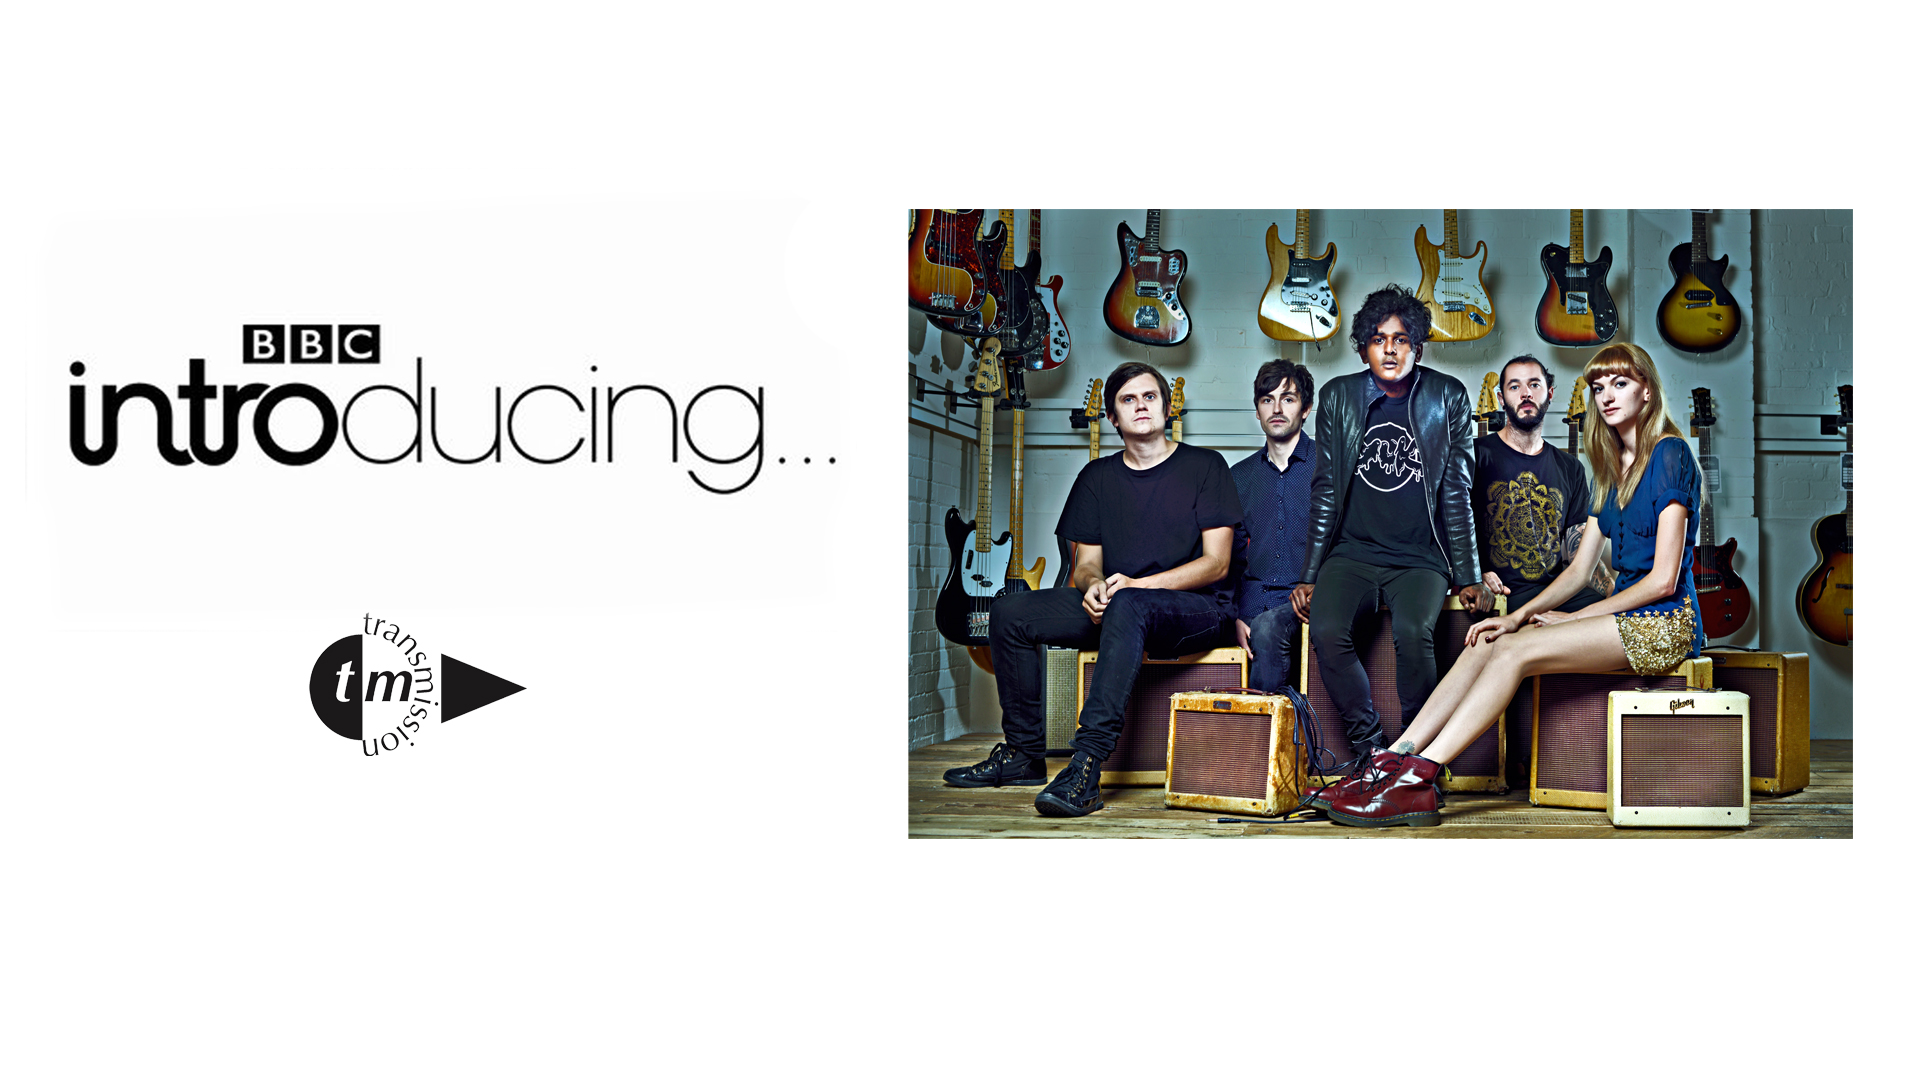 Bleach Blood are today's featured artist on BBC Introducing!